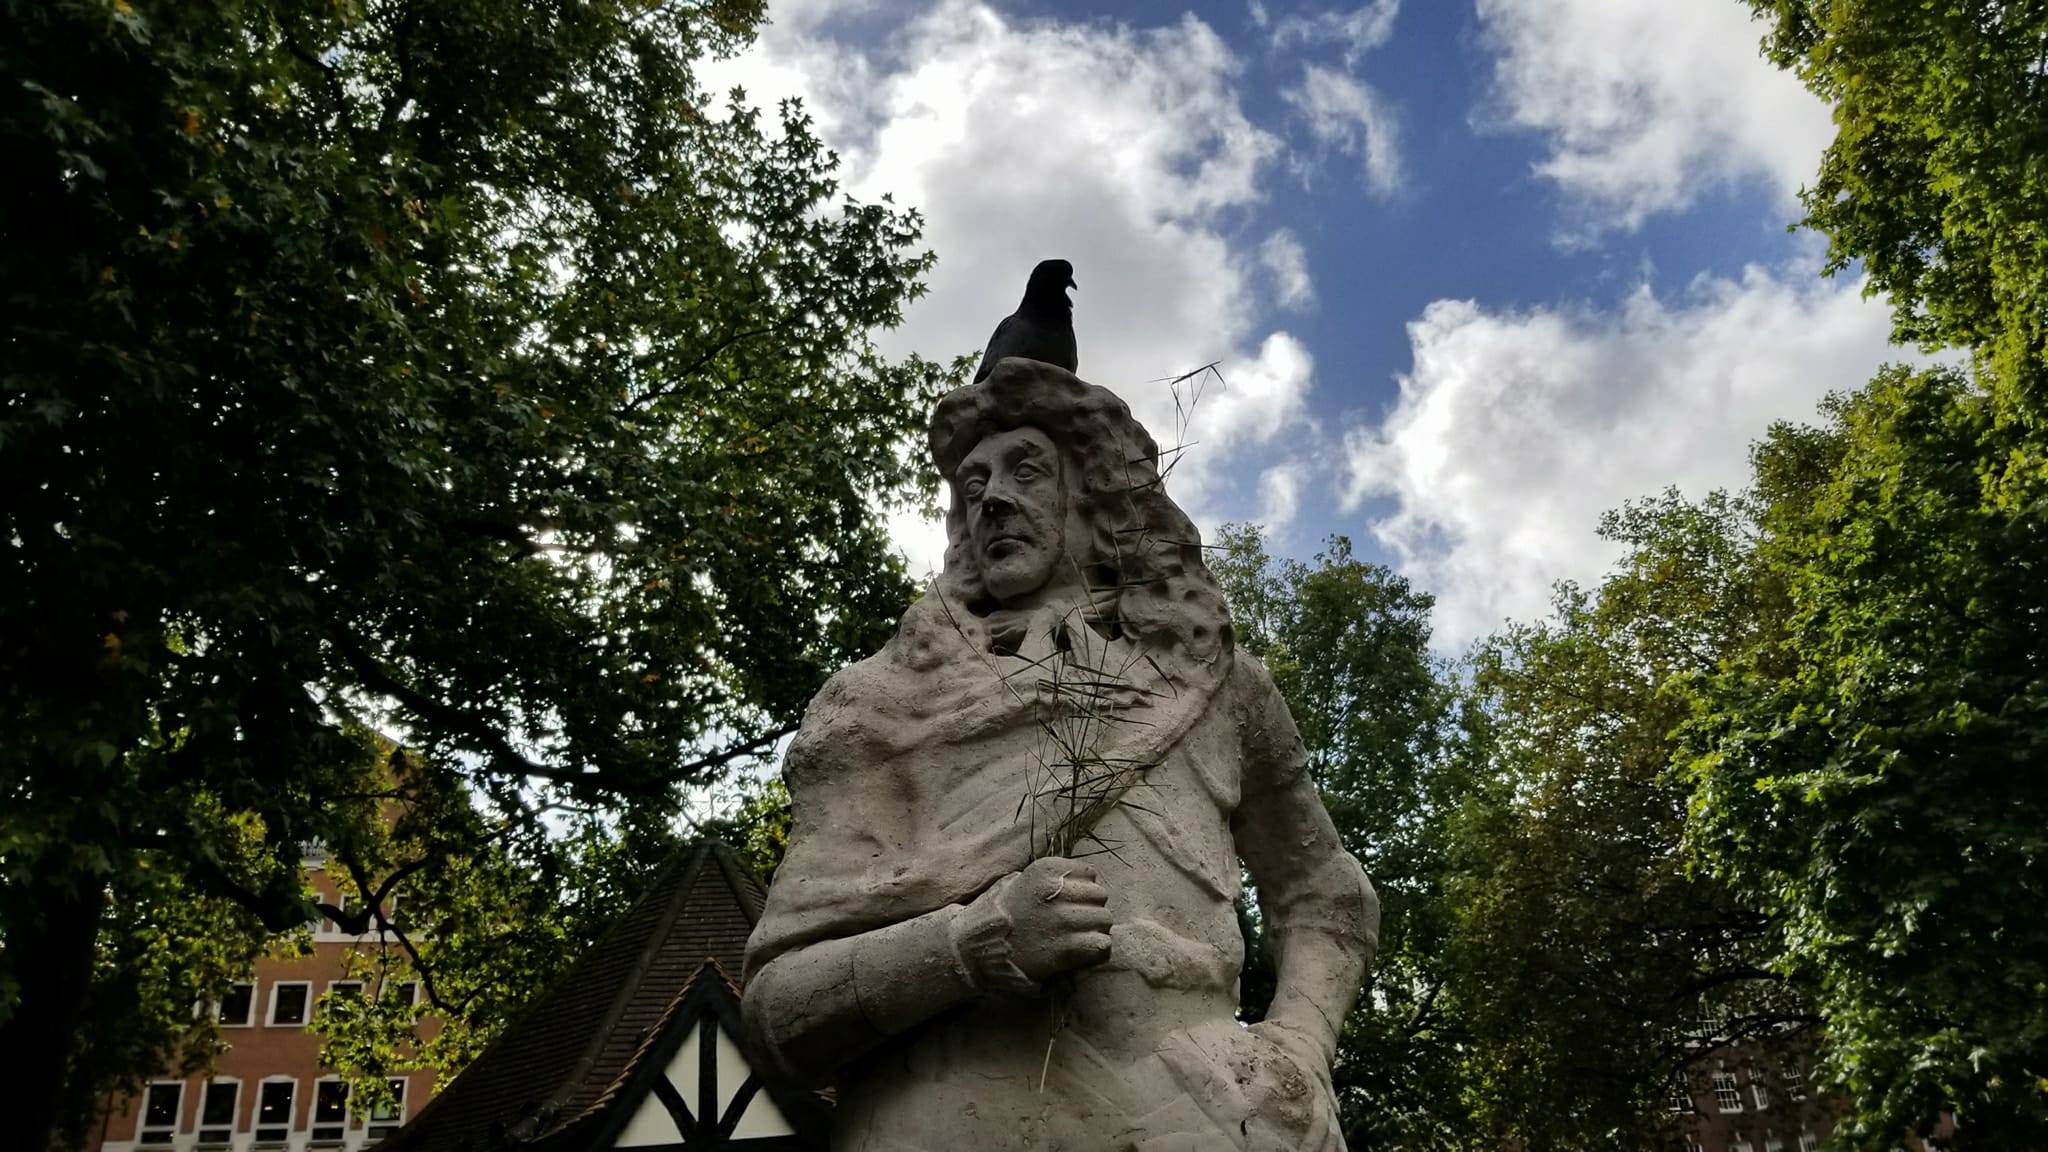 CAPAStudyAbroad_London_Fall2017_From Thaddeus Kaszuba - Charles II in SoHo Square.jpg